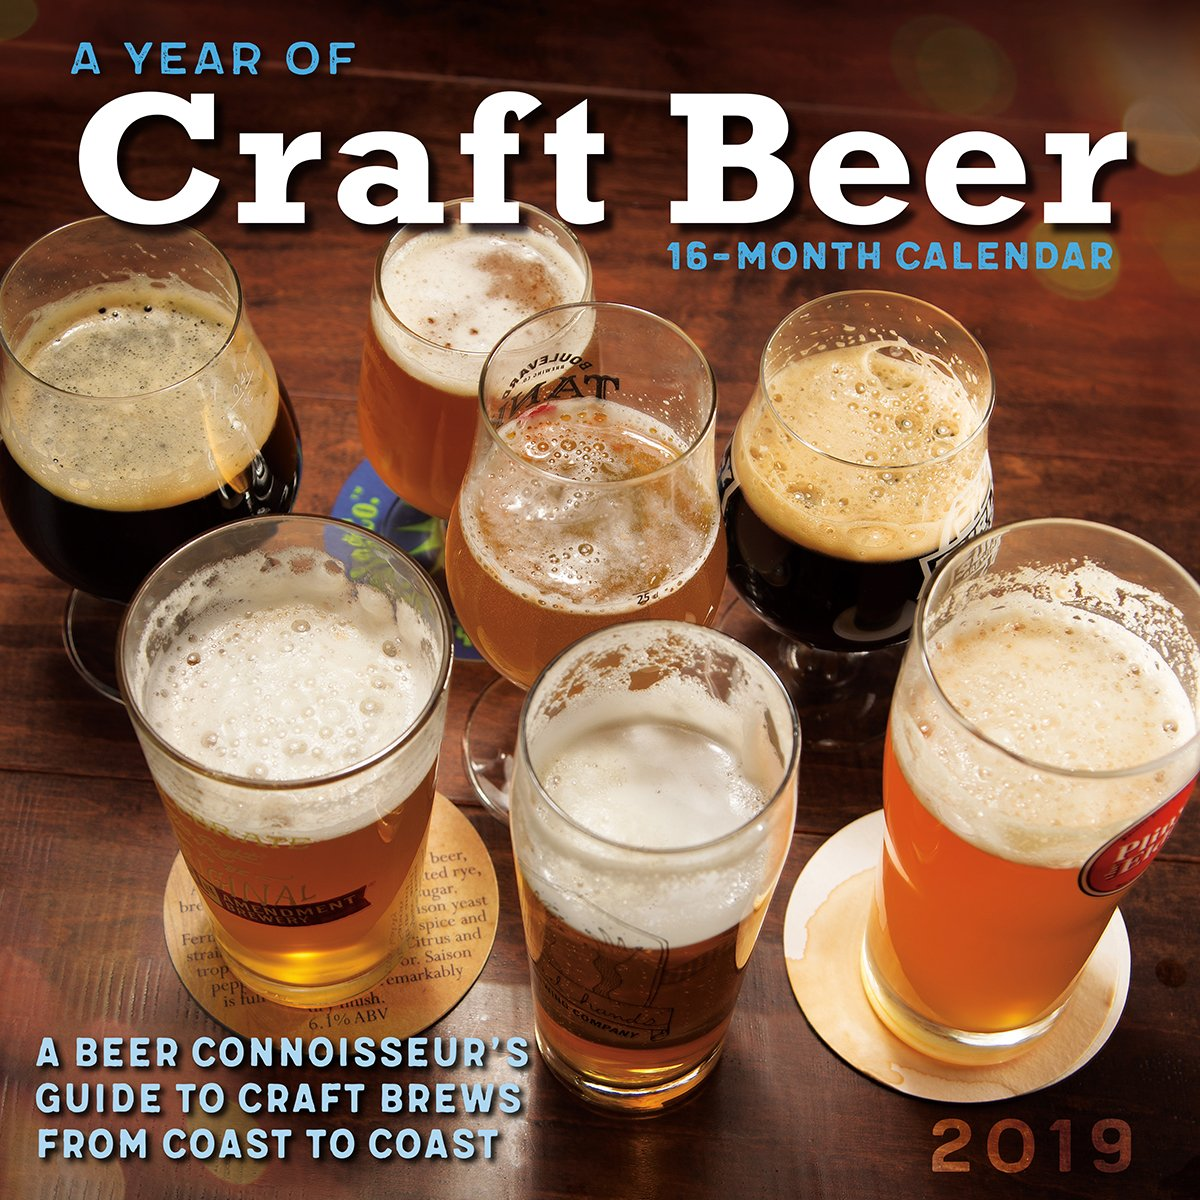 2019 A Year of Craft Beer — A Connoisseur's Guide to Craft Brews from Coast to Coast 16-Month Wall Calendar: by Sellers Publishing, 12x12 (CA-0416) Calendar – Wall Calendar, Aug 15 2018 Nicholas Soloway Inc. 1531904165 /